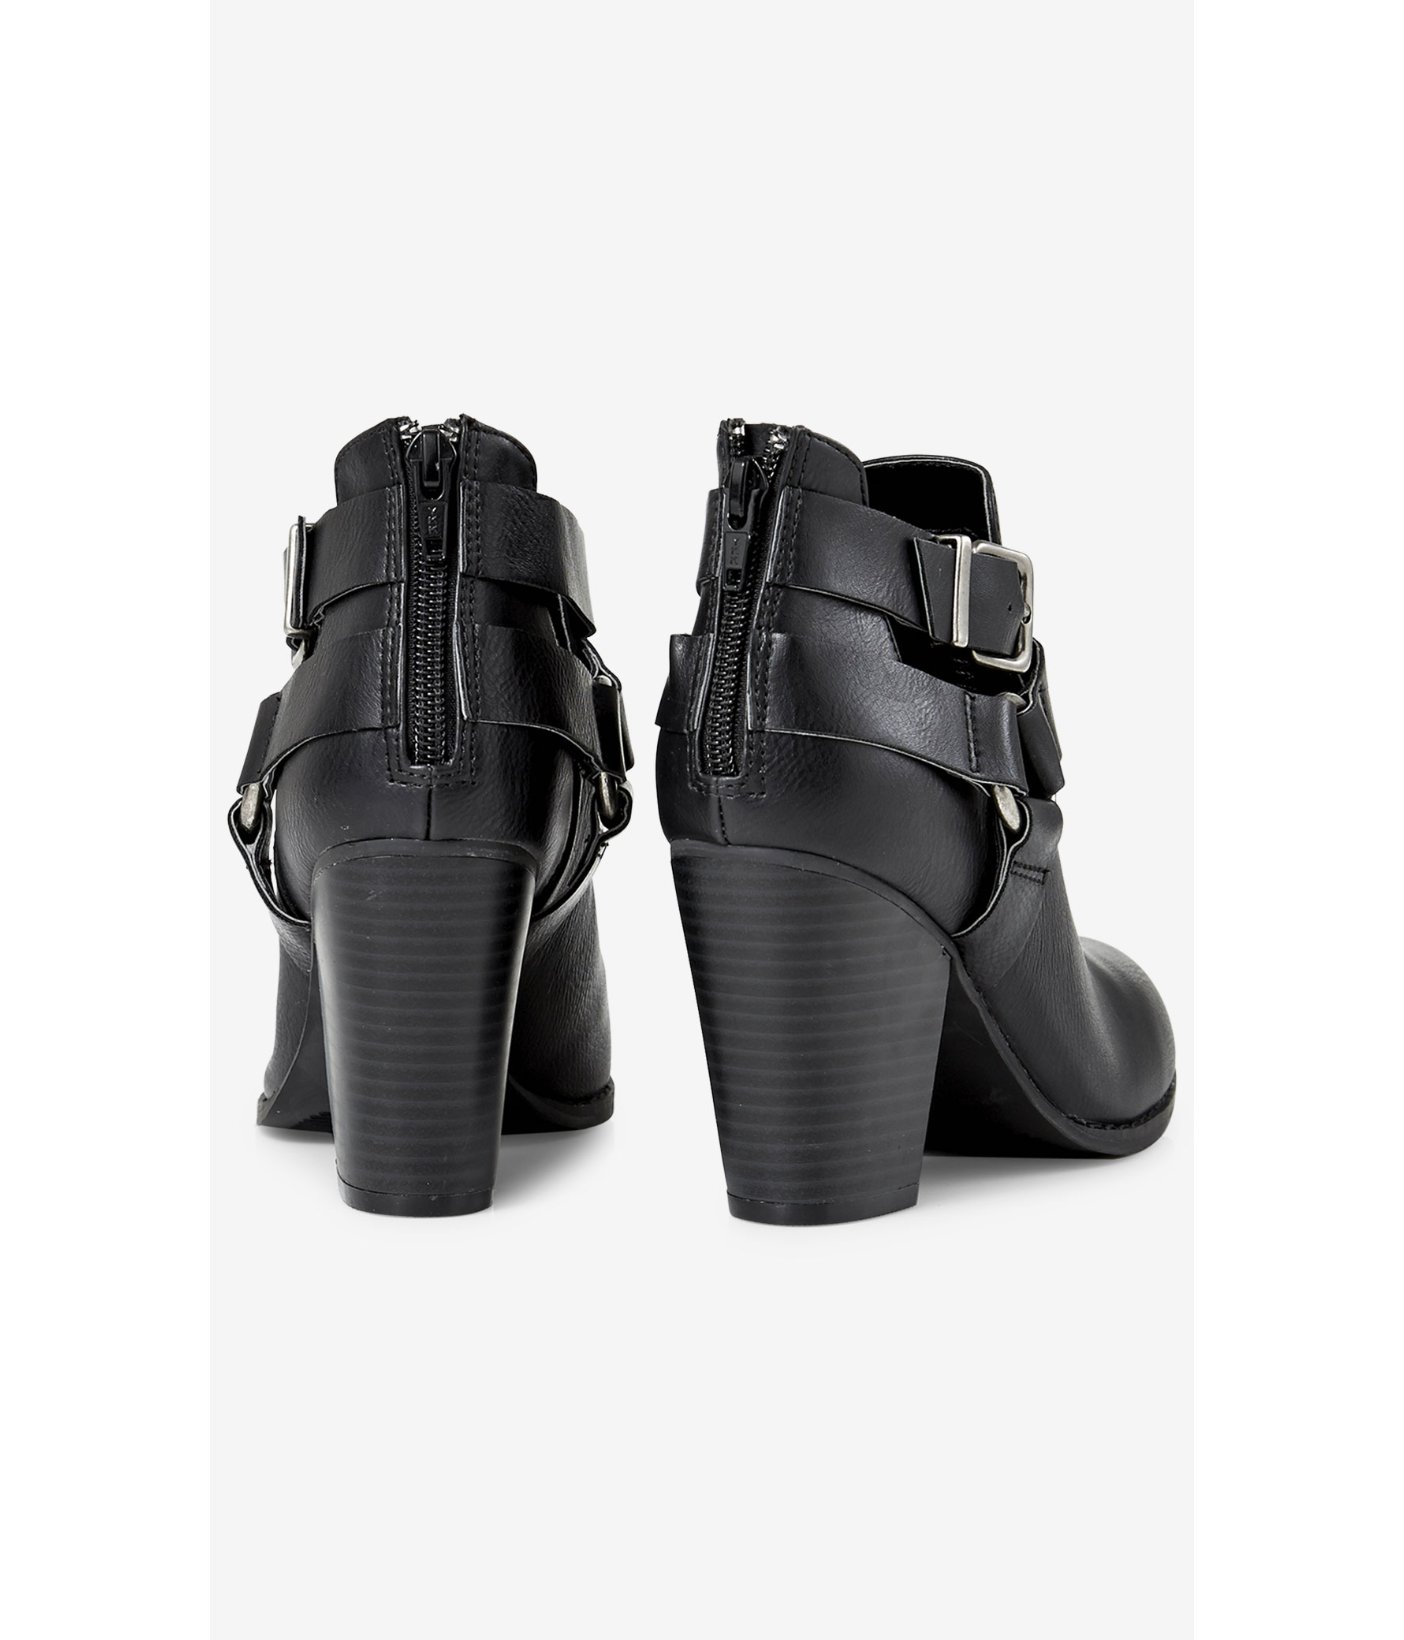 Express Buckled Cut-Out Bootie in Black